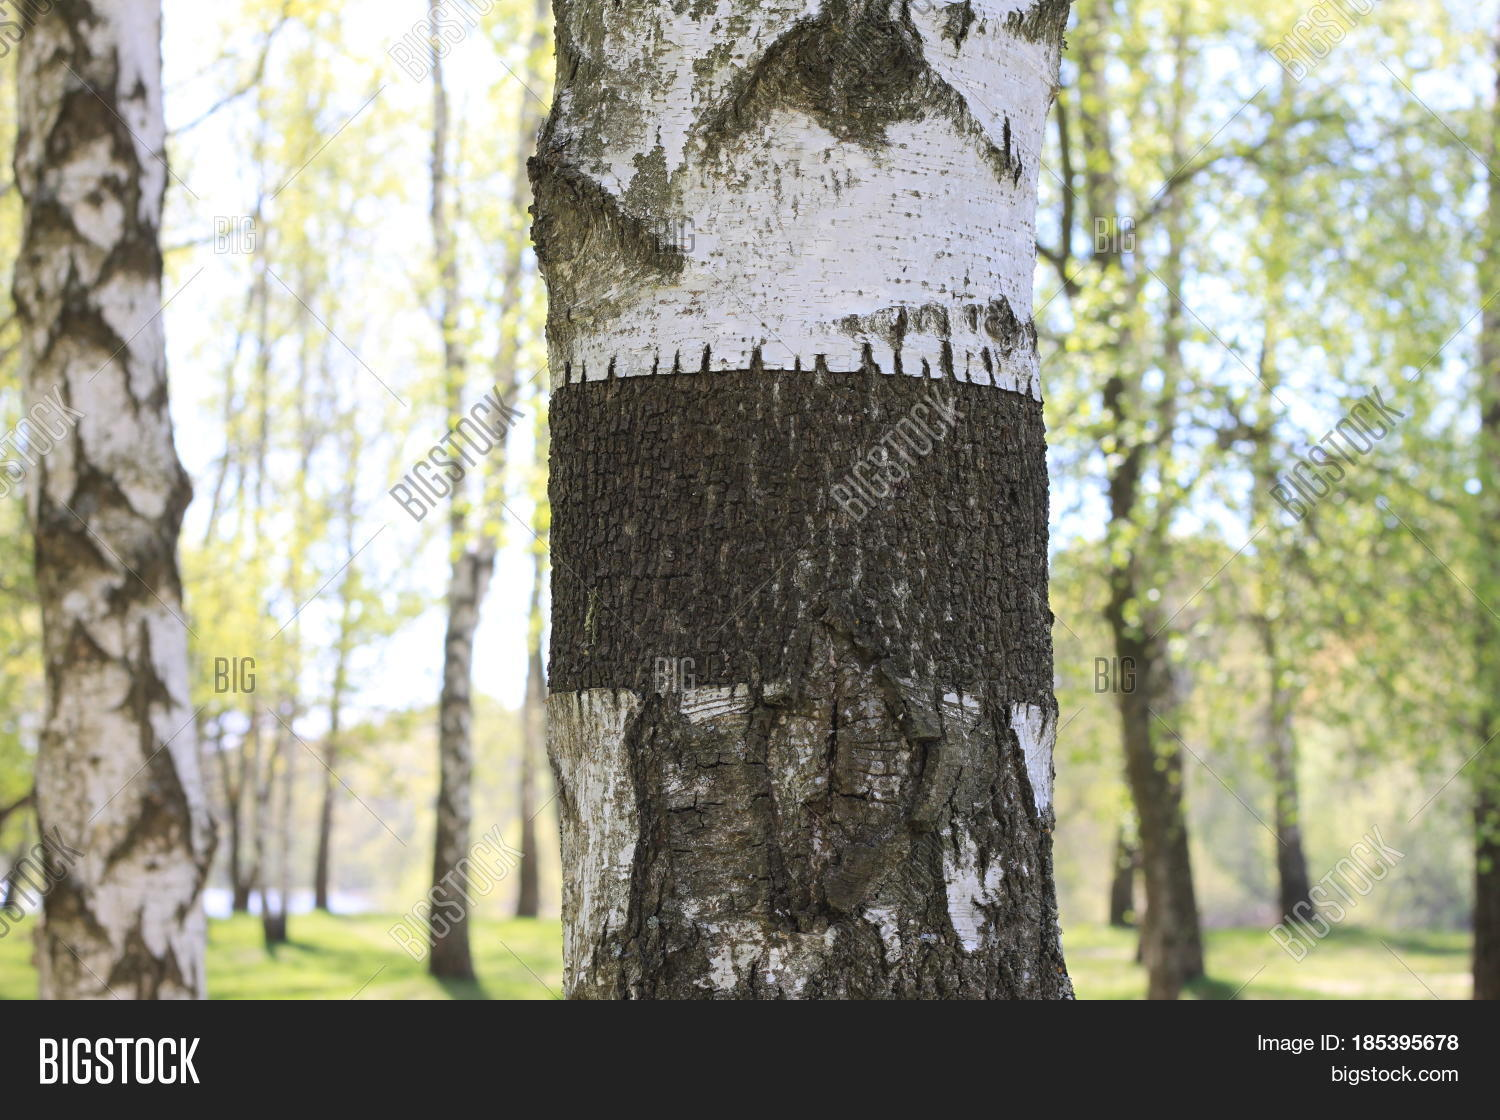 Trunk of birch tree with black-and-white birch bark close-up in